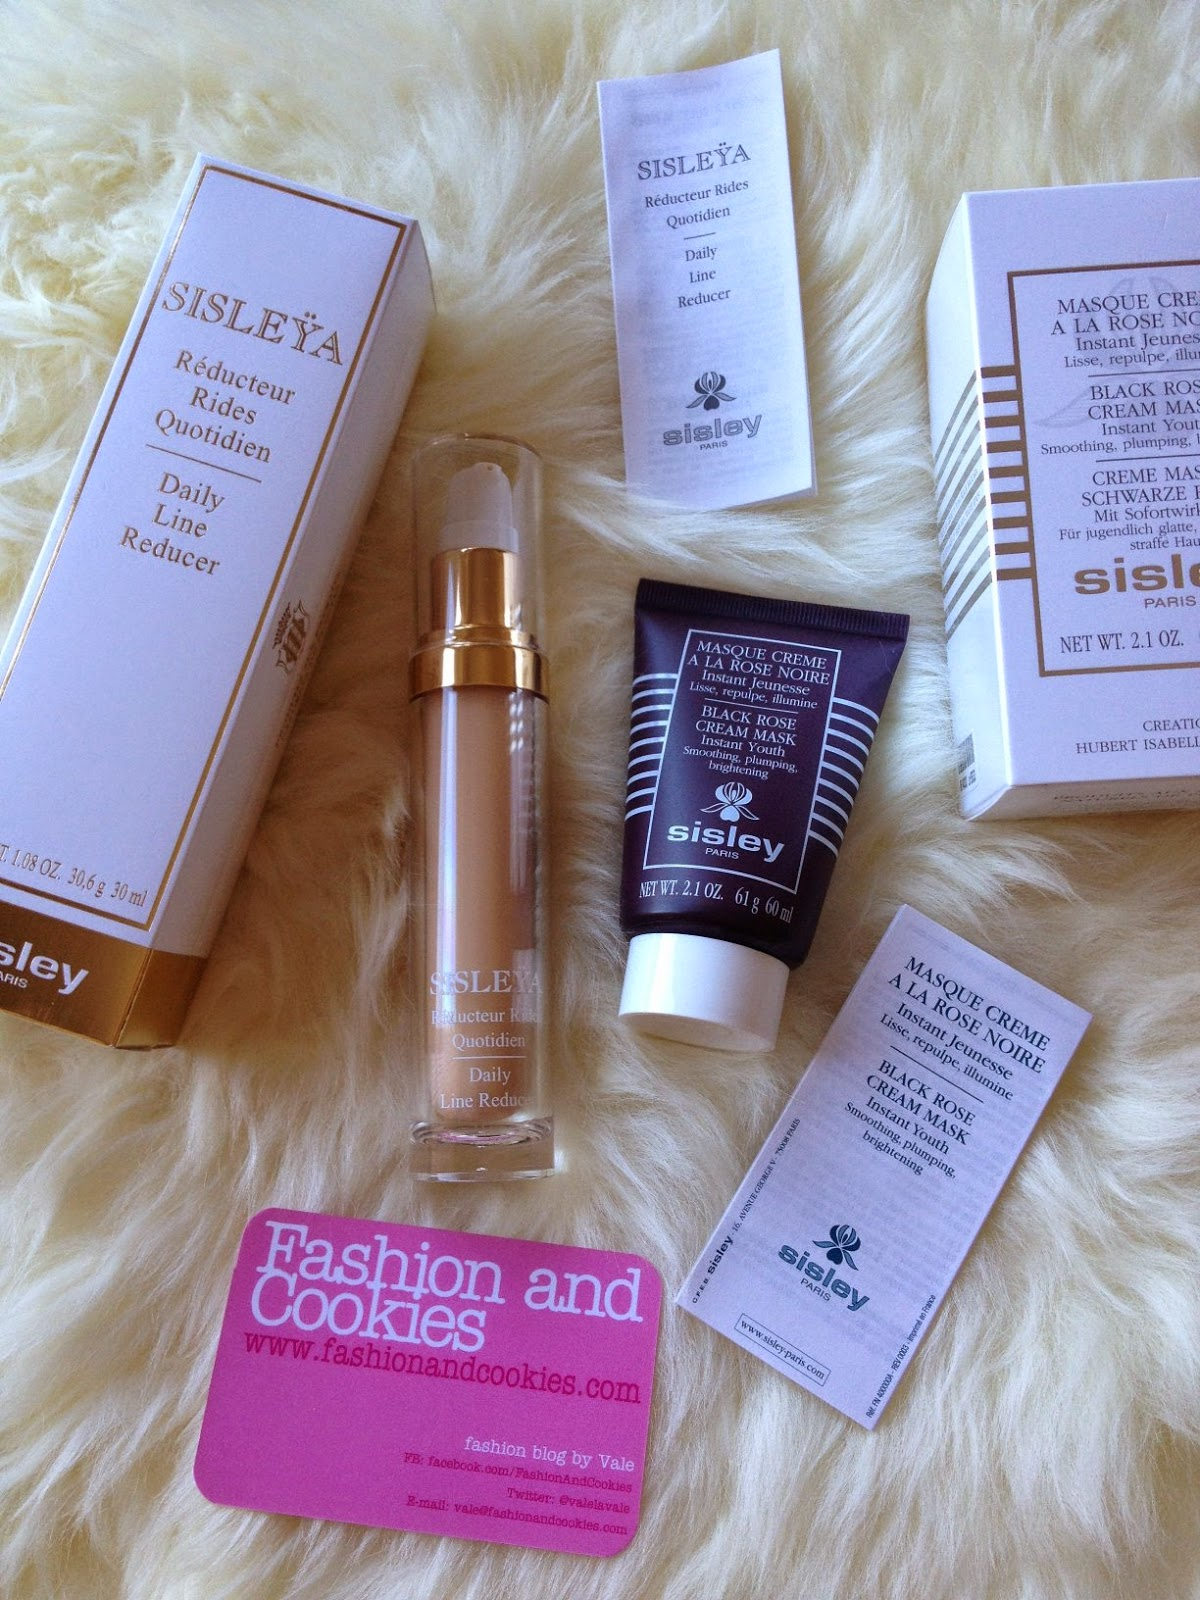 Sisley Paris Sisleya Daily Line Reducer, Sisley Black Rose Mask, Fashion and Cookies fashion blog, fashion blogger skincare advice